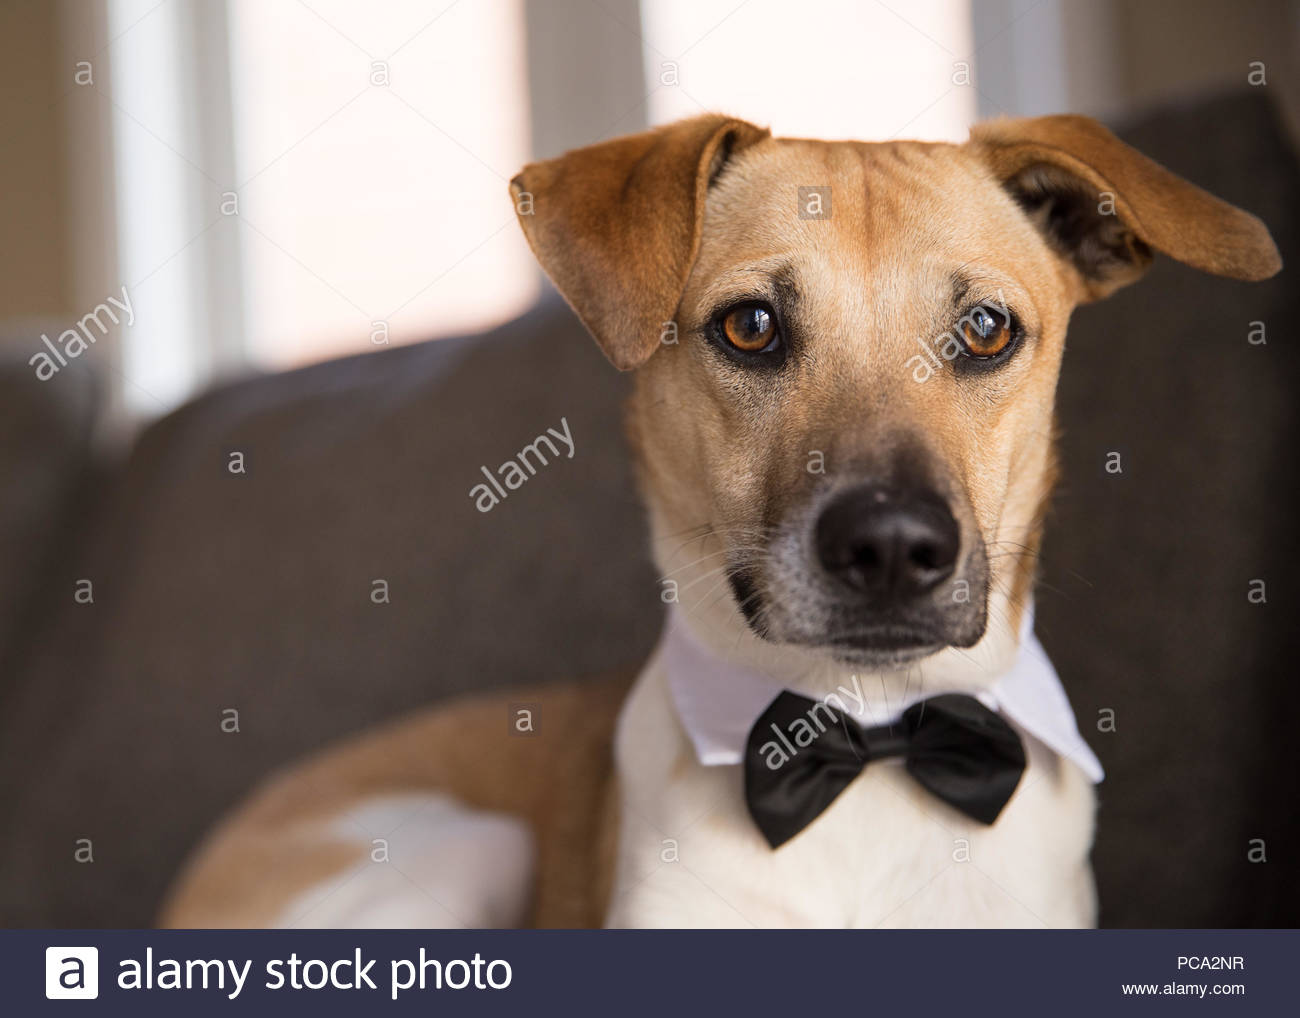 Close-up of Brown dog with brown eyes and one ear raised looking at viewer and wearing a bowtie - Stock Image